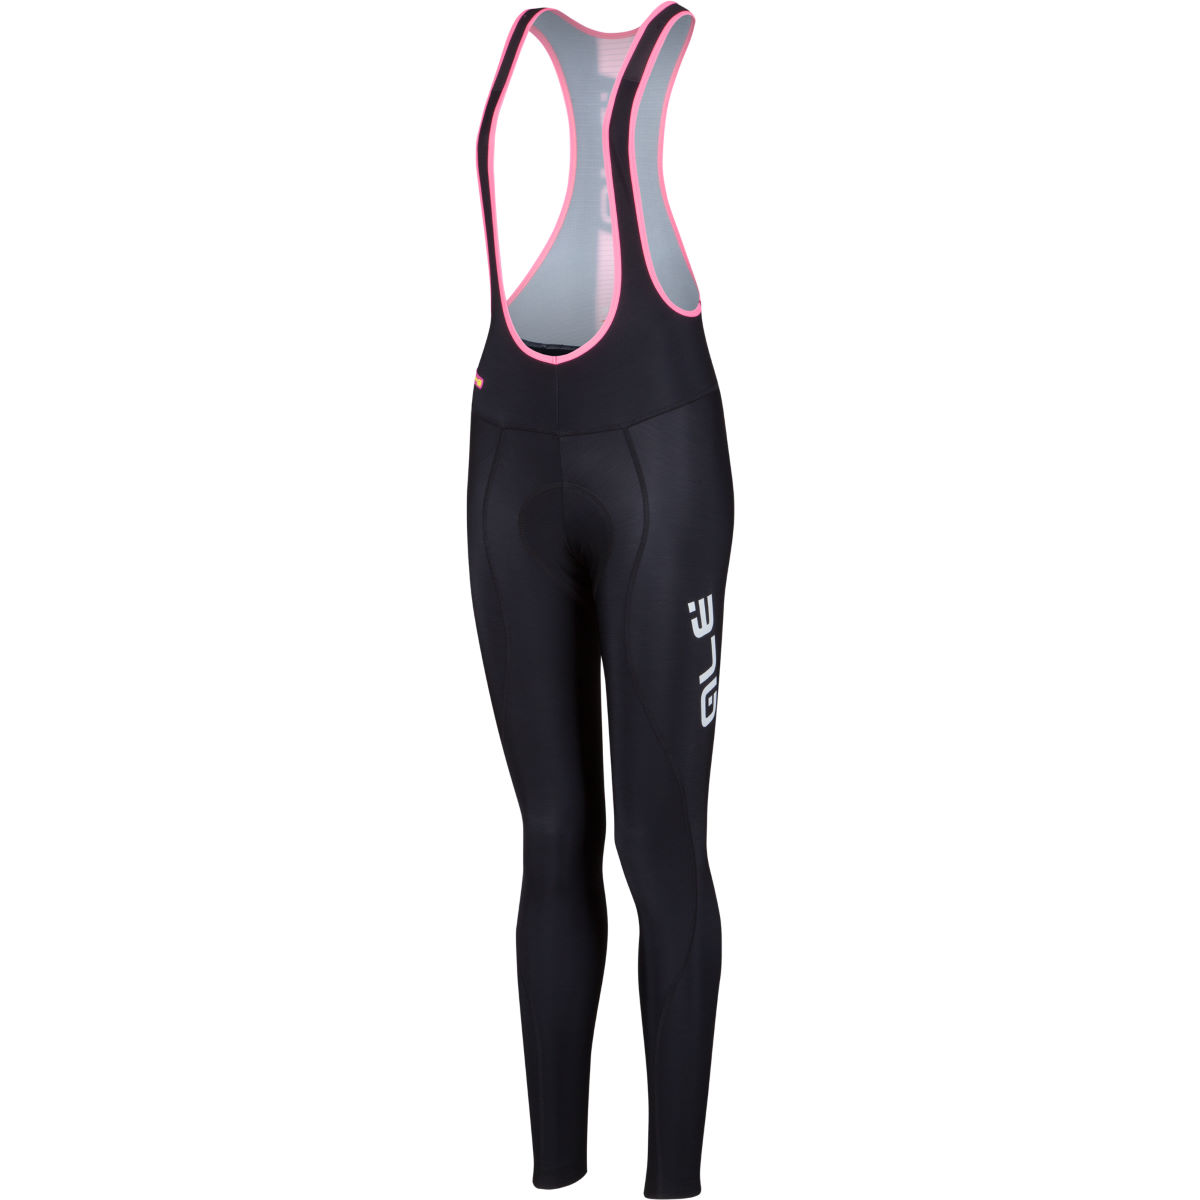 Alé Women's Formula 1.0 Bib Tights